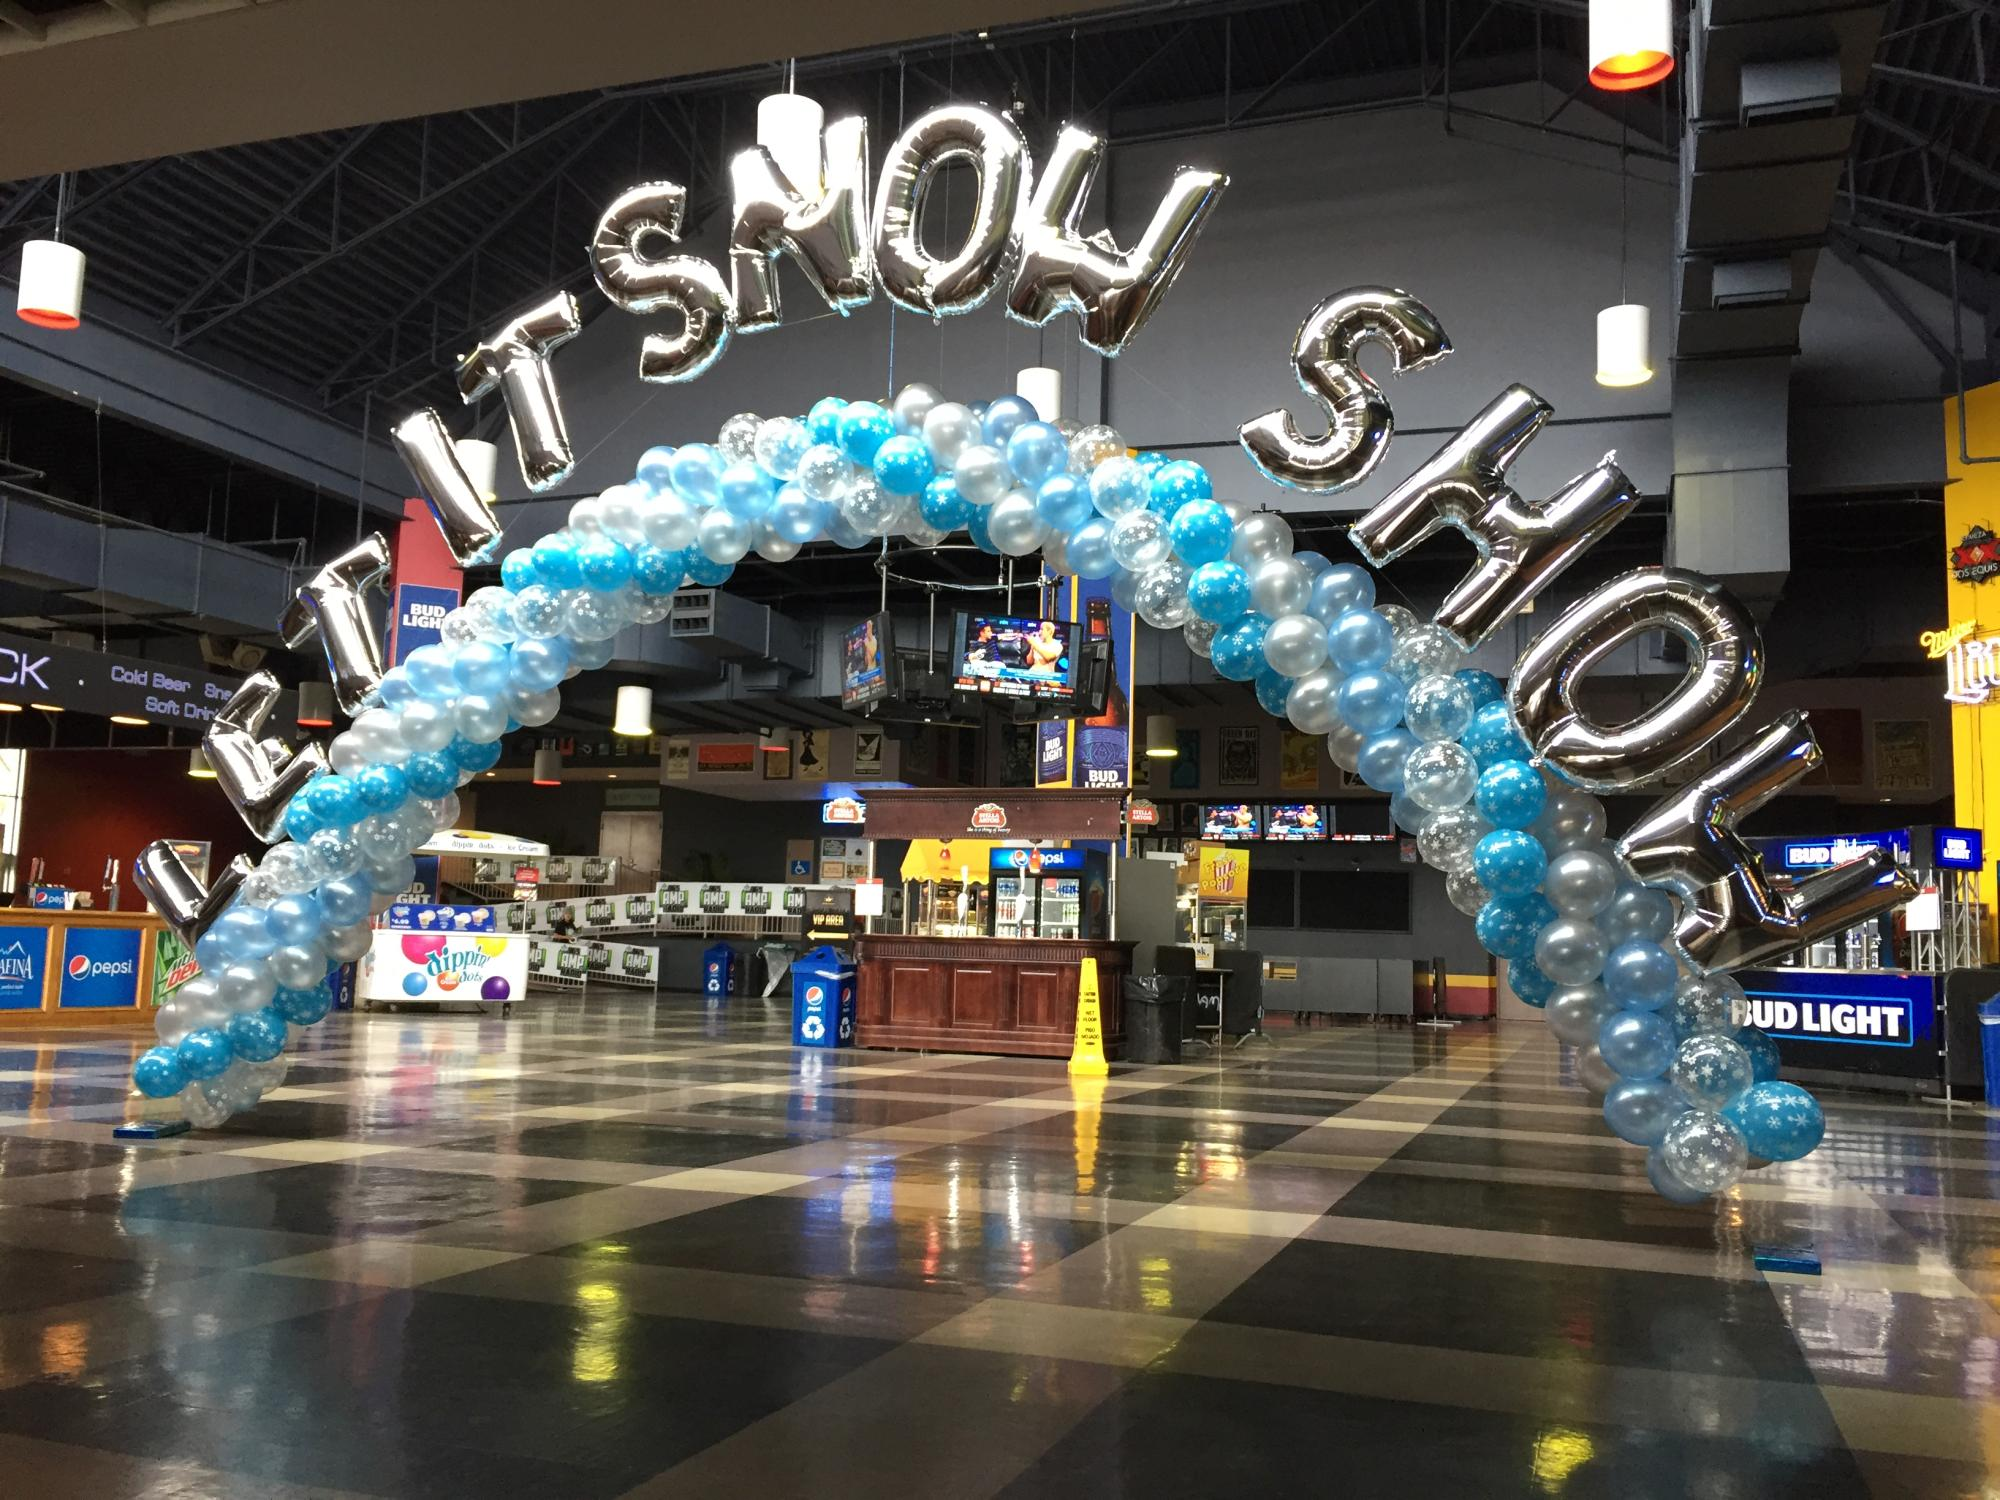 Winter wonderland themed balloon display